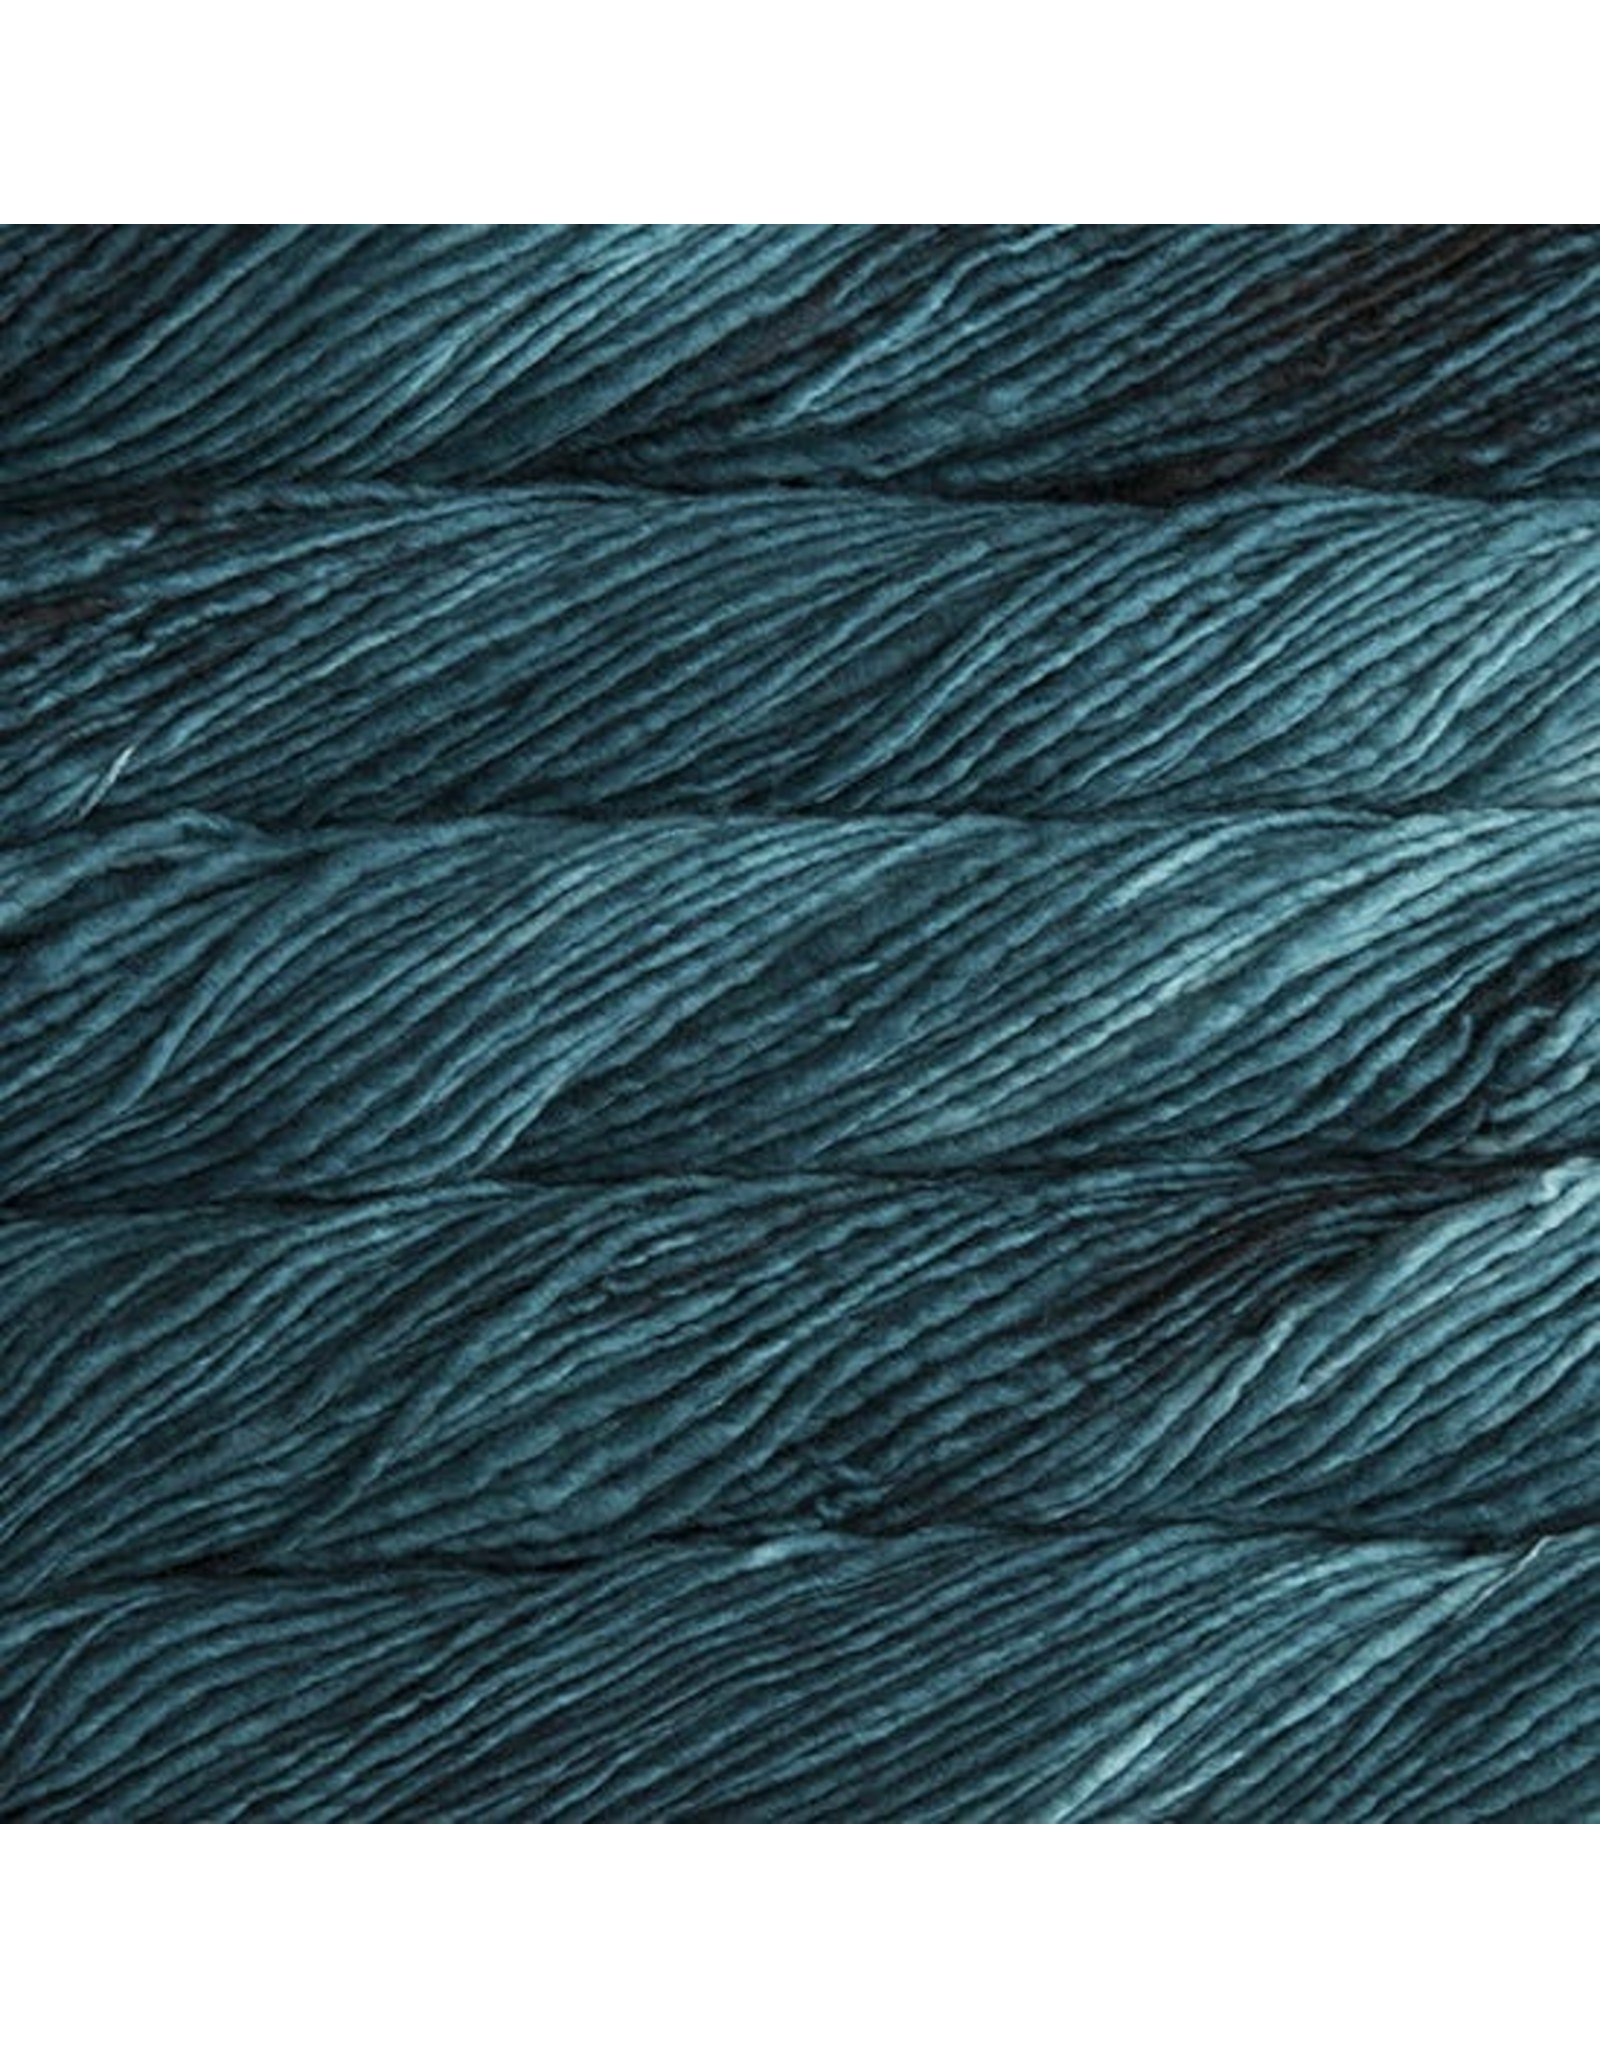 Malabrigo Teal Feather - Mecha - Malabrigo